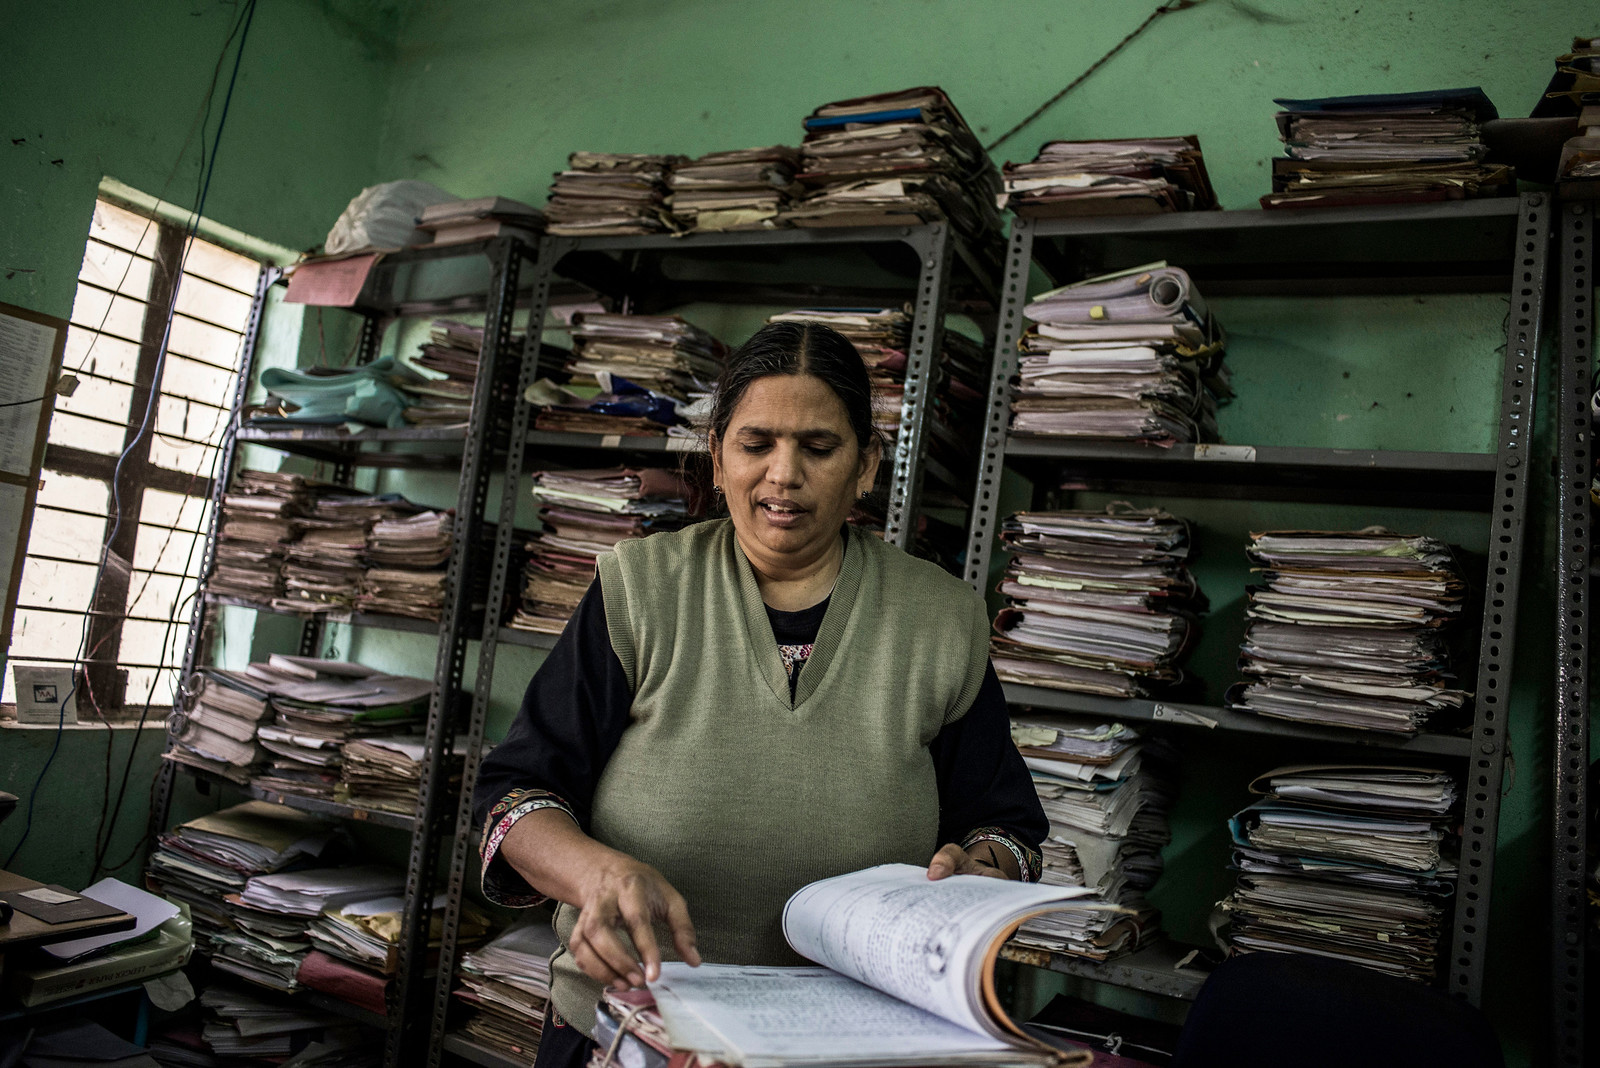 Chattisgarh, India, February 2015:   Social worker and lawyer Sudha Bharadwaj seen at her office in Bilaspur. Her organization represents the tribals whose land has been allocated illegally to the coal mining companies.   Photographs for a story on land allocation for coal mines in Chattisgarh.  Modi's new government in the centre has relaxed the environmental regulations so the land can be allocated to both public and private sector companies easily.   Photo by Sami Siva for Al Jazeera America.